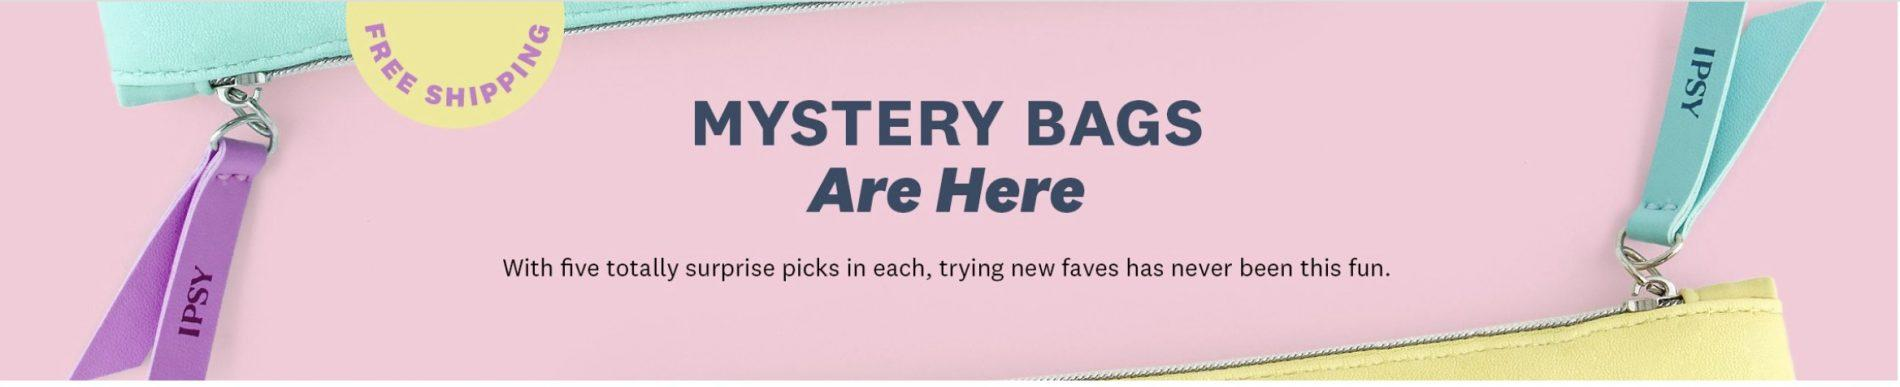 Ipsy June 2021 Mystery Bags – On Sale Now!